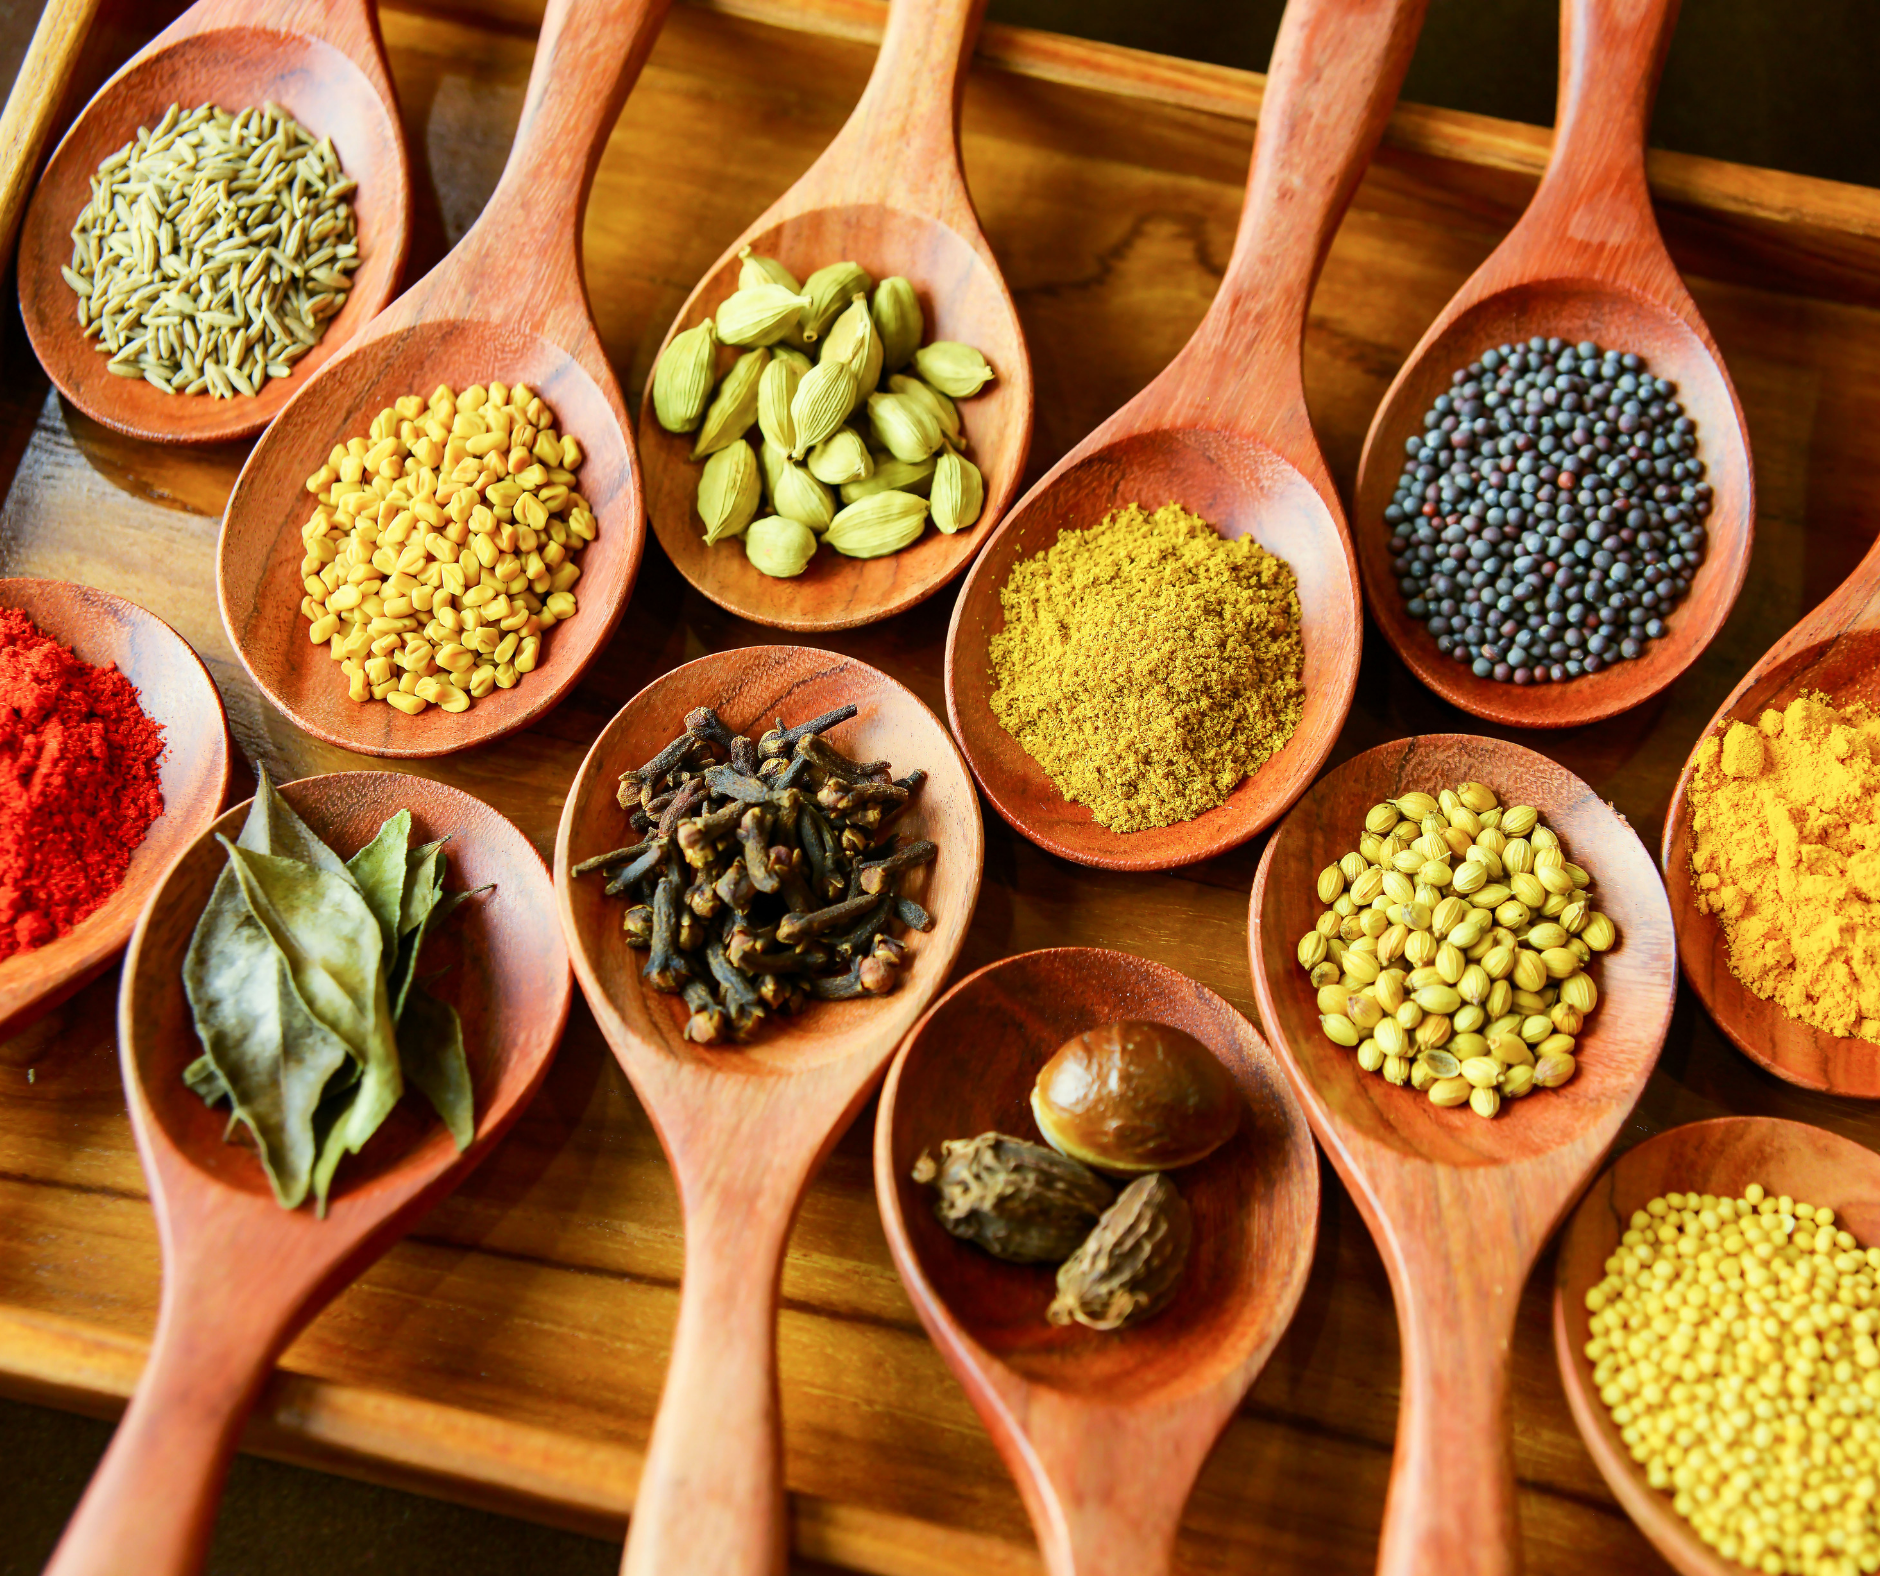 Which spices are used in Indian cooking